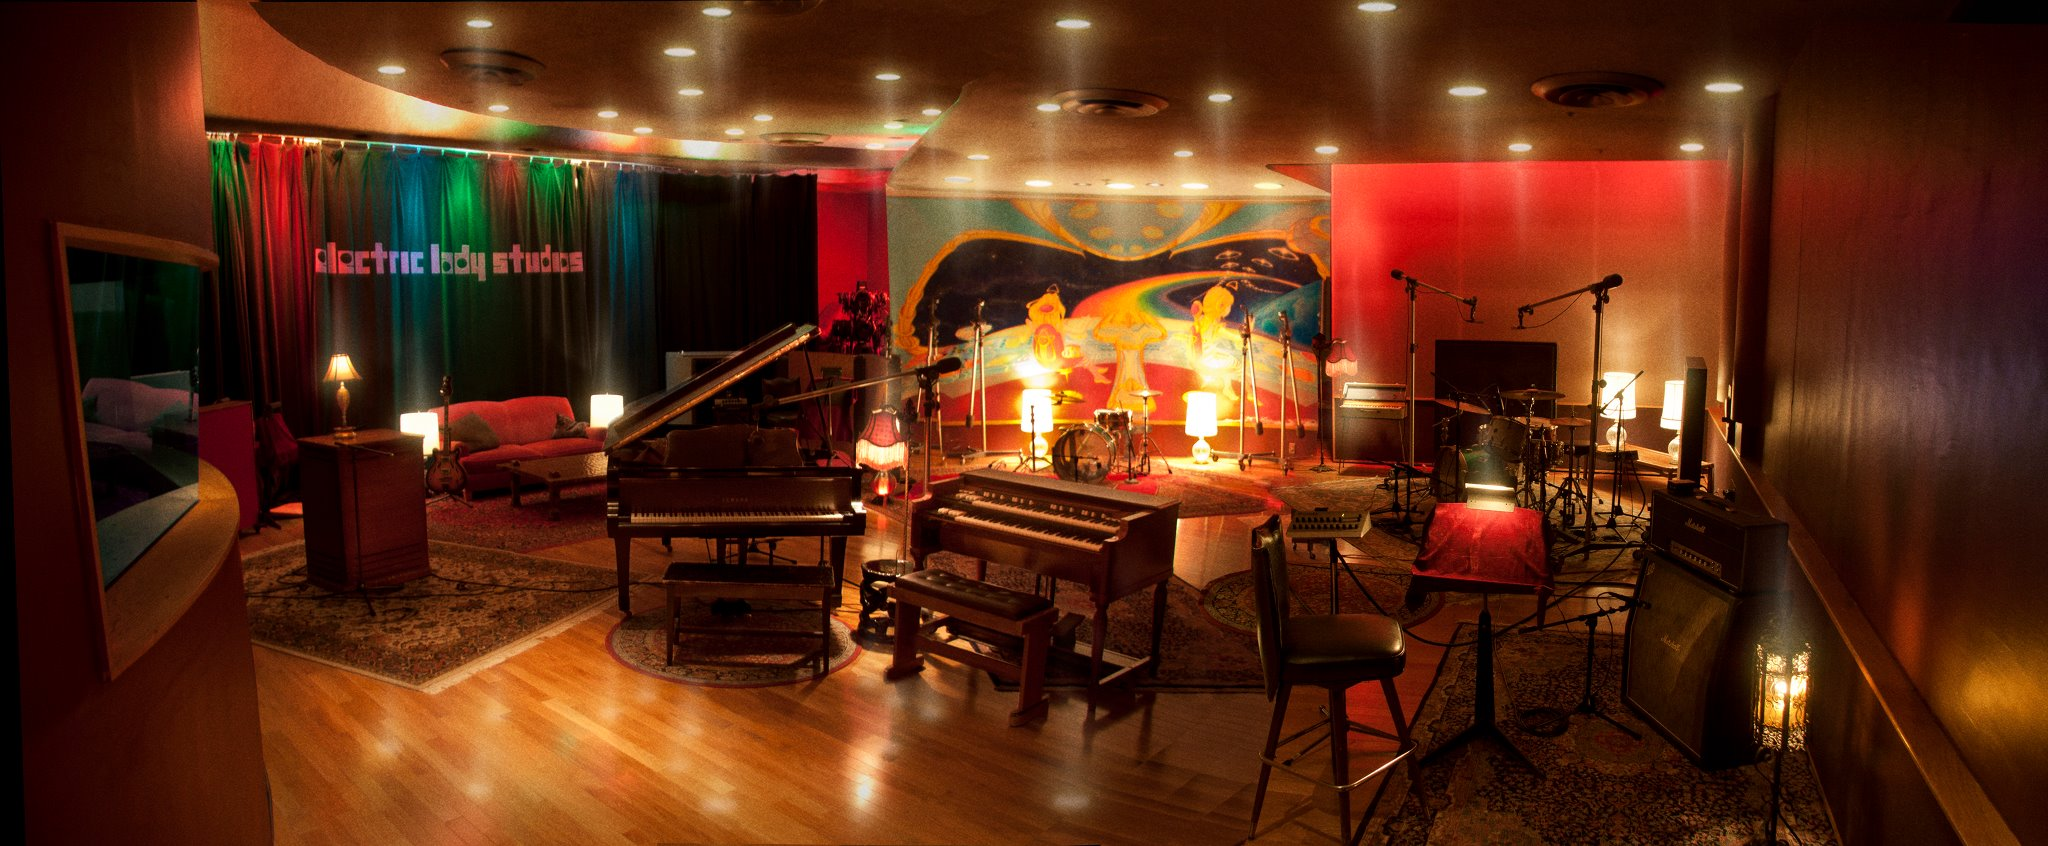 Now Gimme a Beat! 7 Incredible NYC Recording Studios Every Musician ...